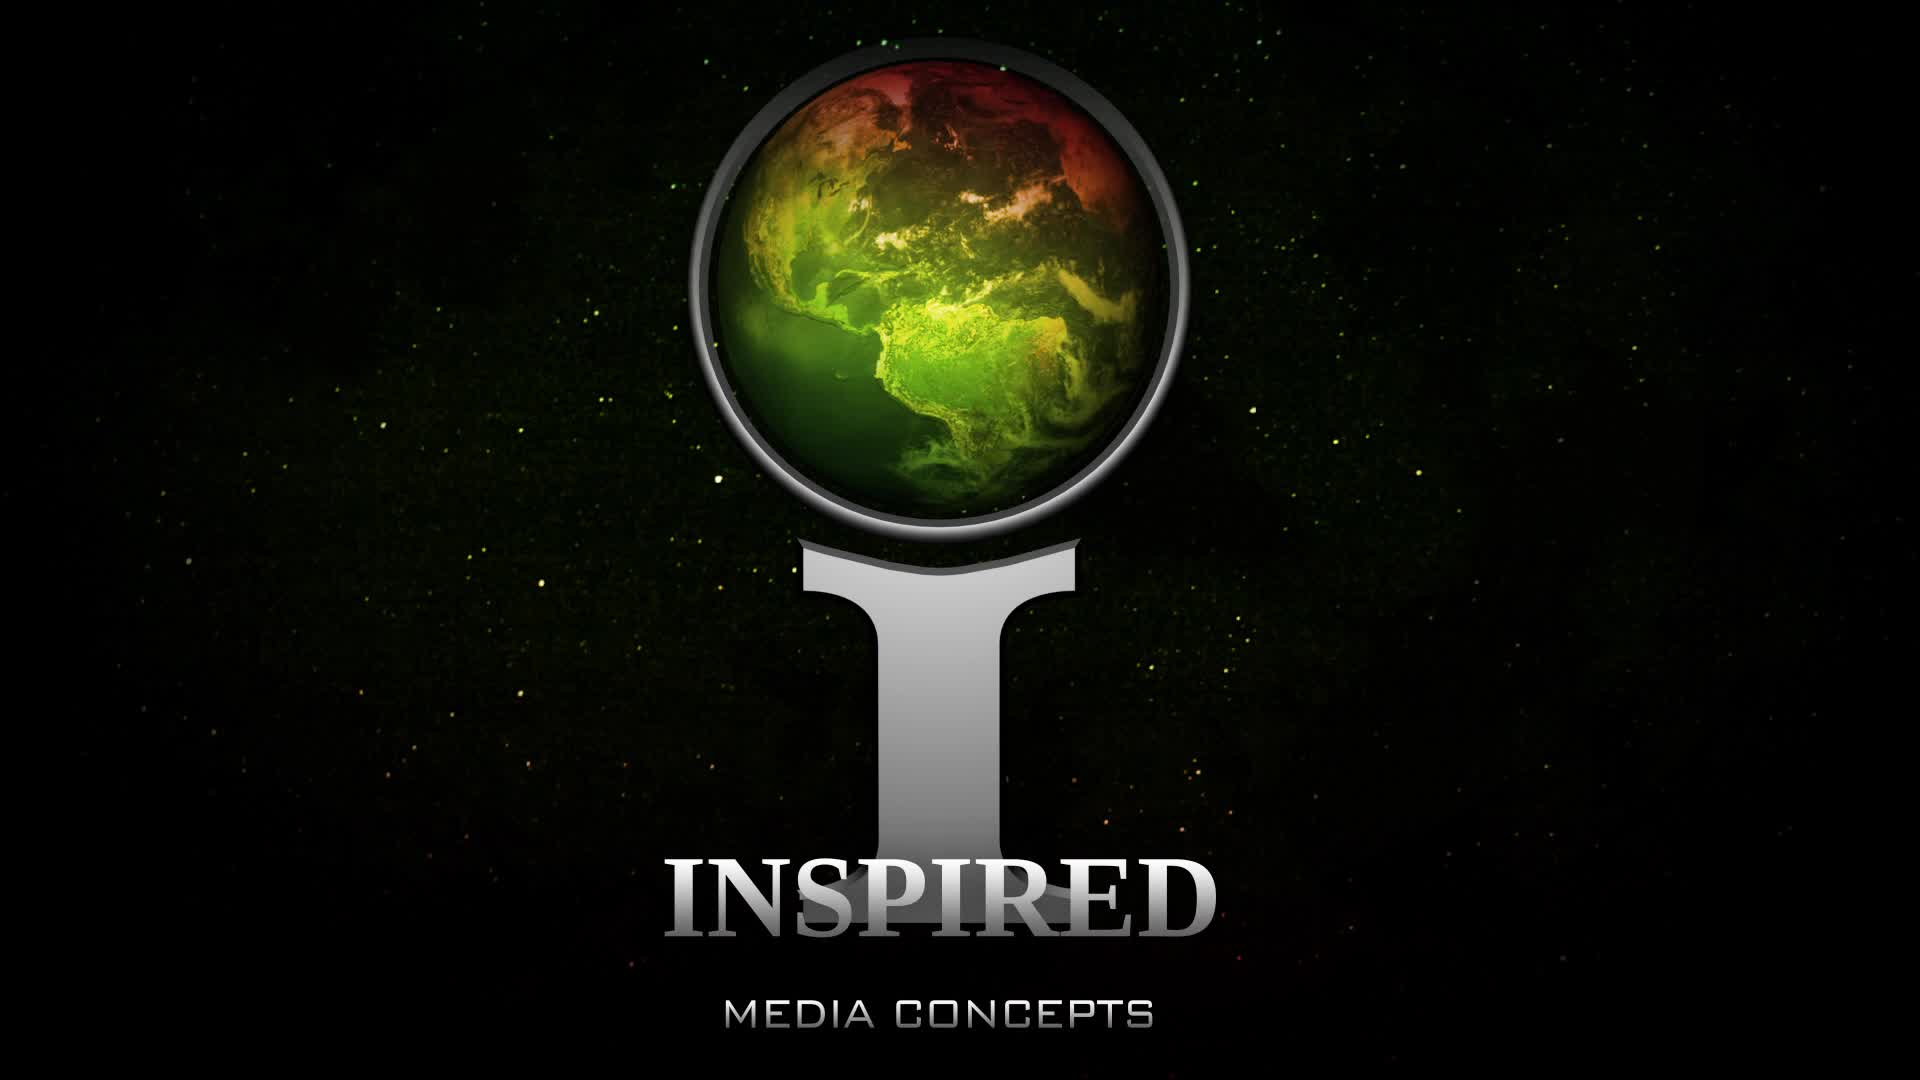 Inspired Media Wallpaper You Are Here Home Idahomiez